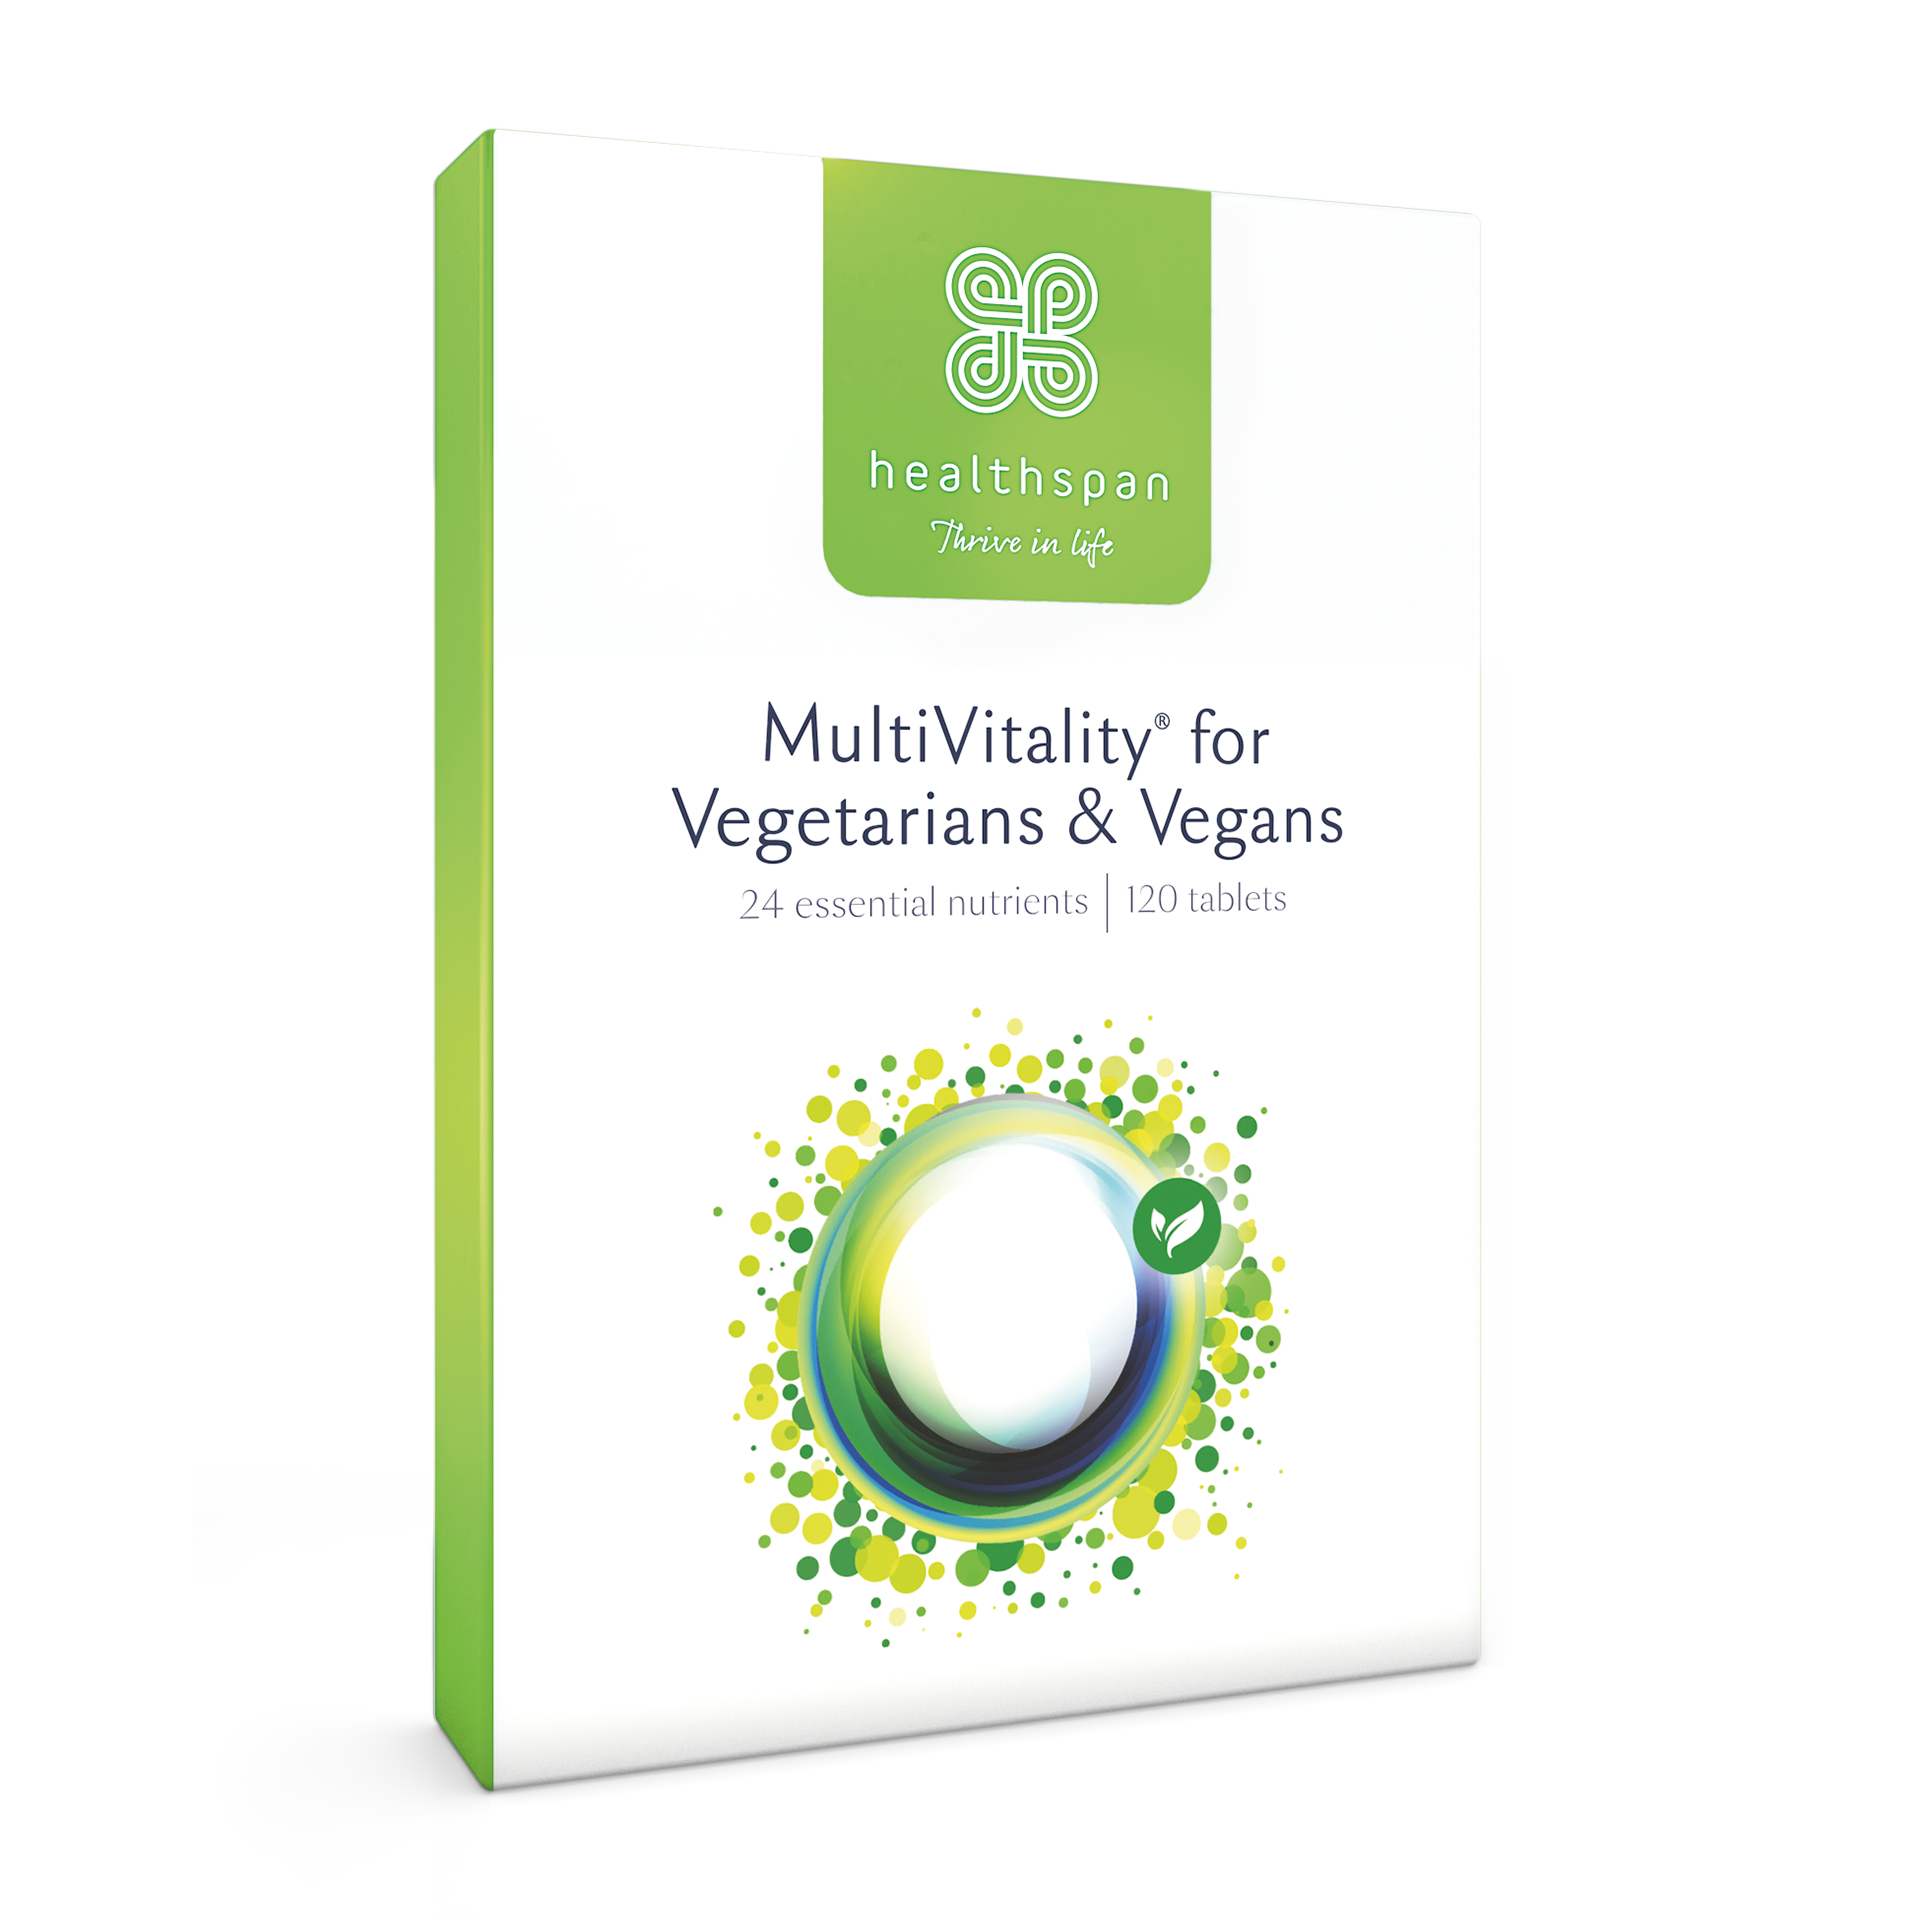 MultiVitality for Vegetarians & Vegans